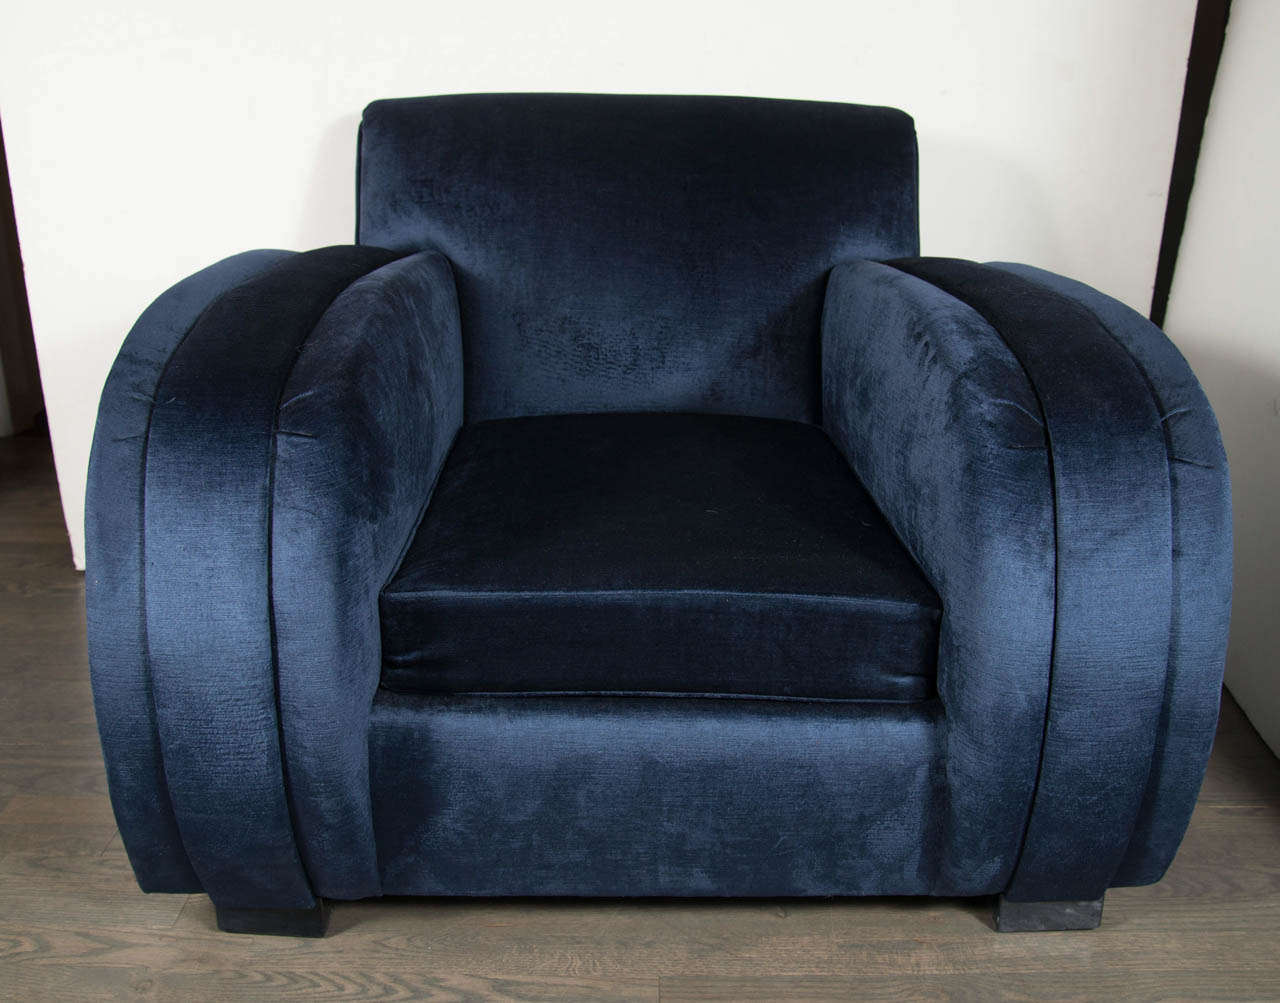 Art Deco Streamlined Club Chair in Sapphire Blue Velvet Upholstery 2